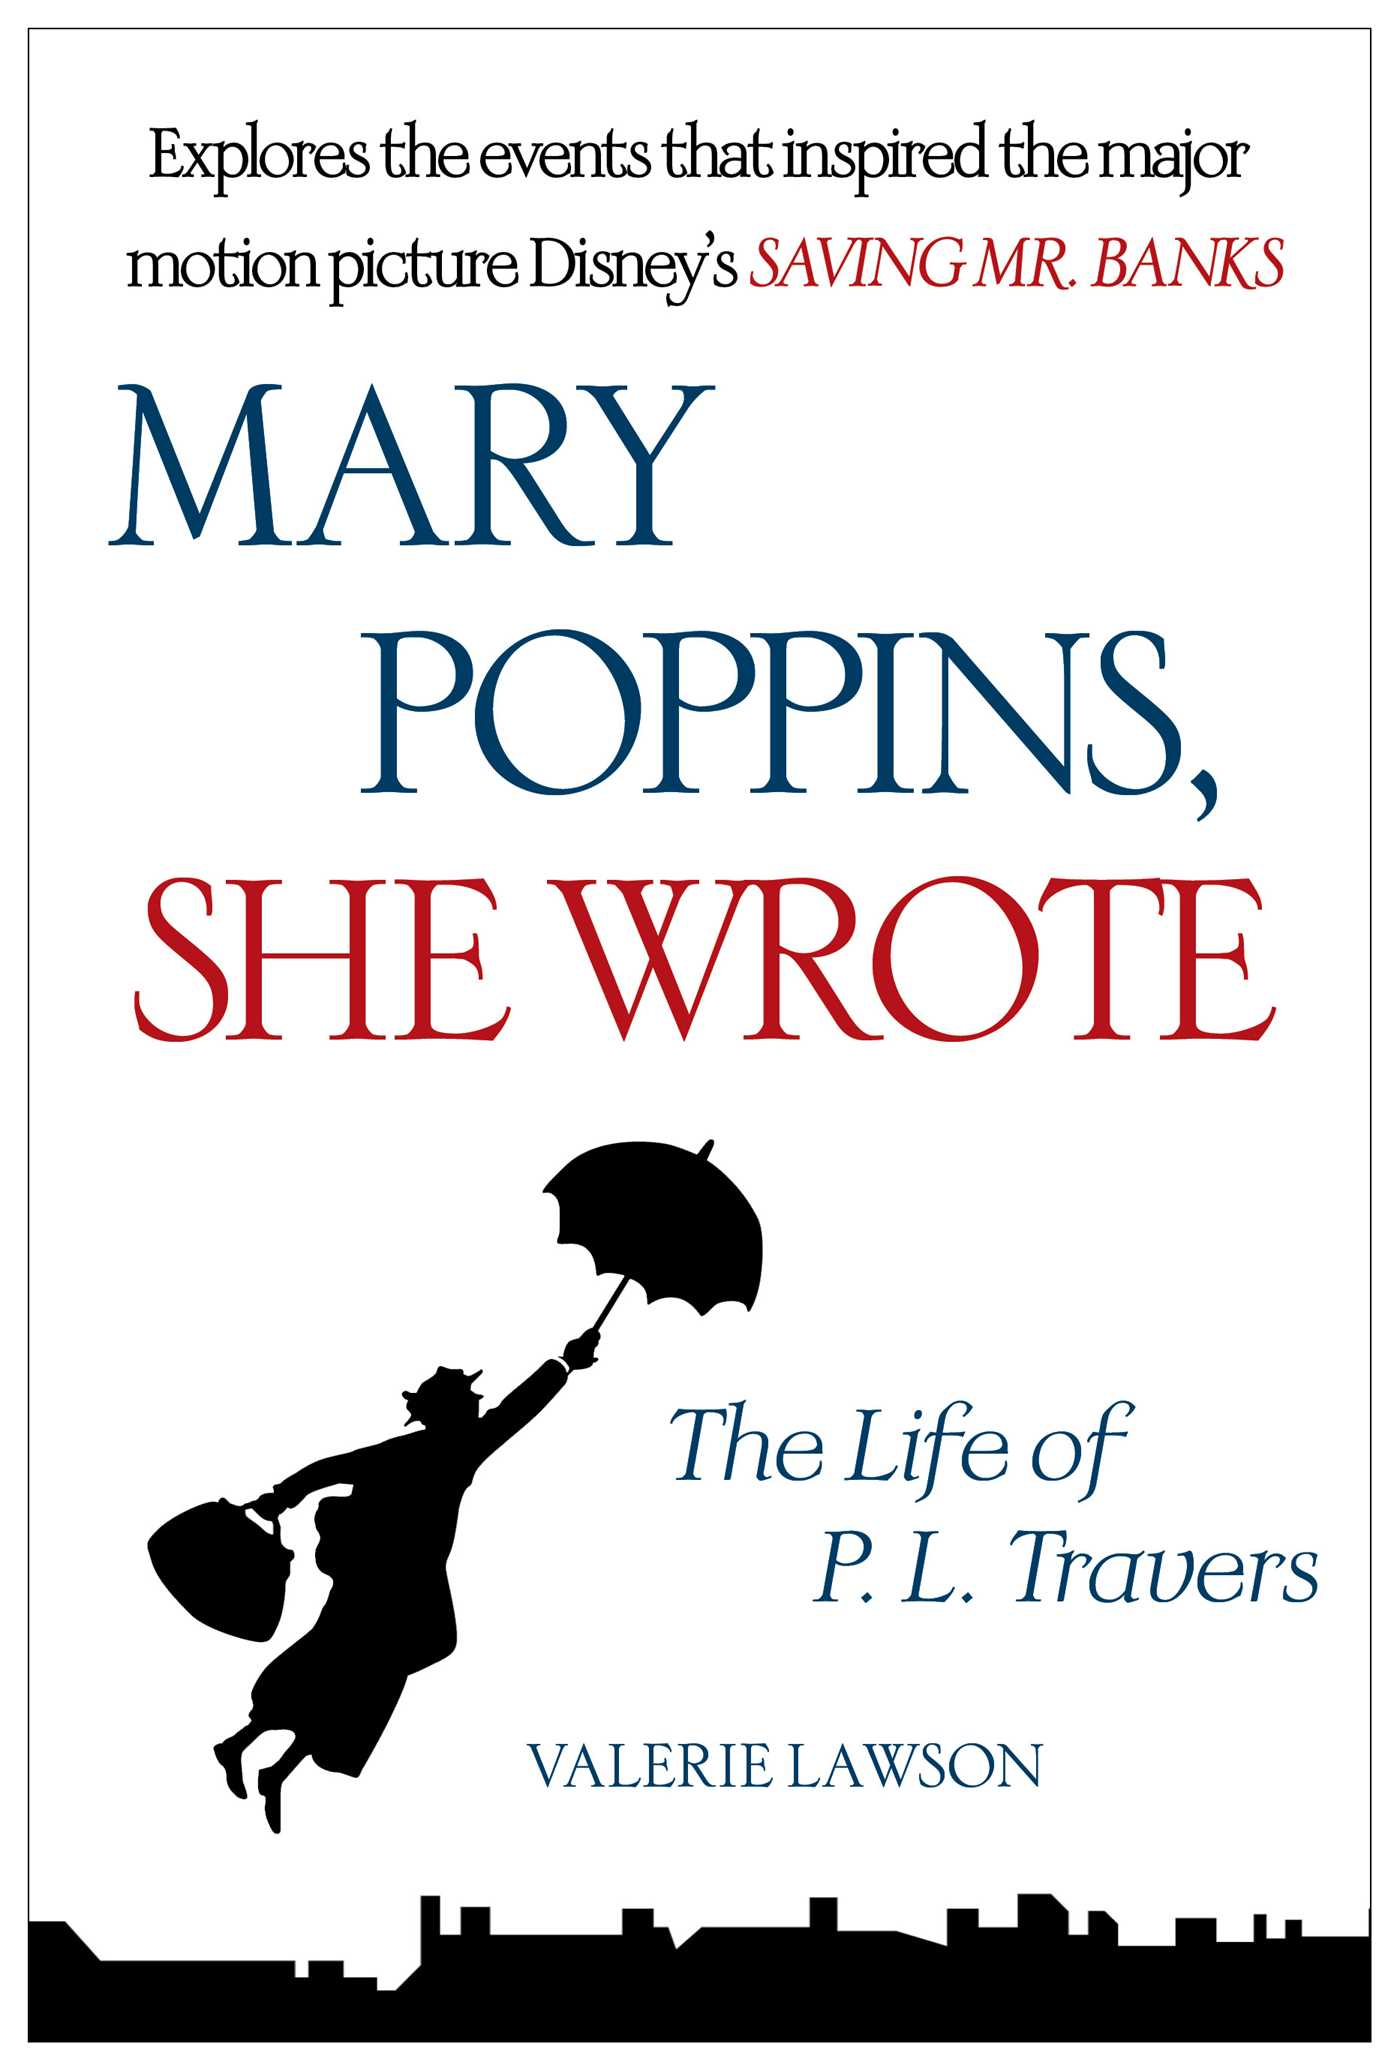 Mary poppins she wrote 9781476762937 hr